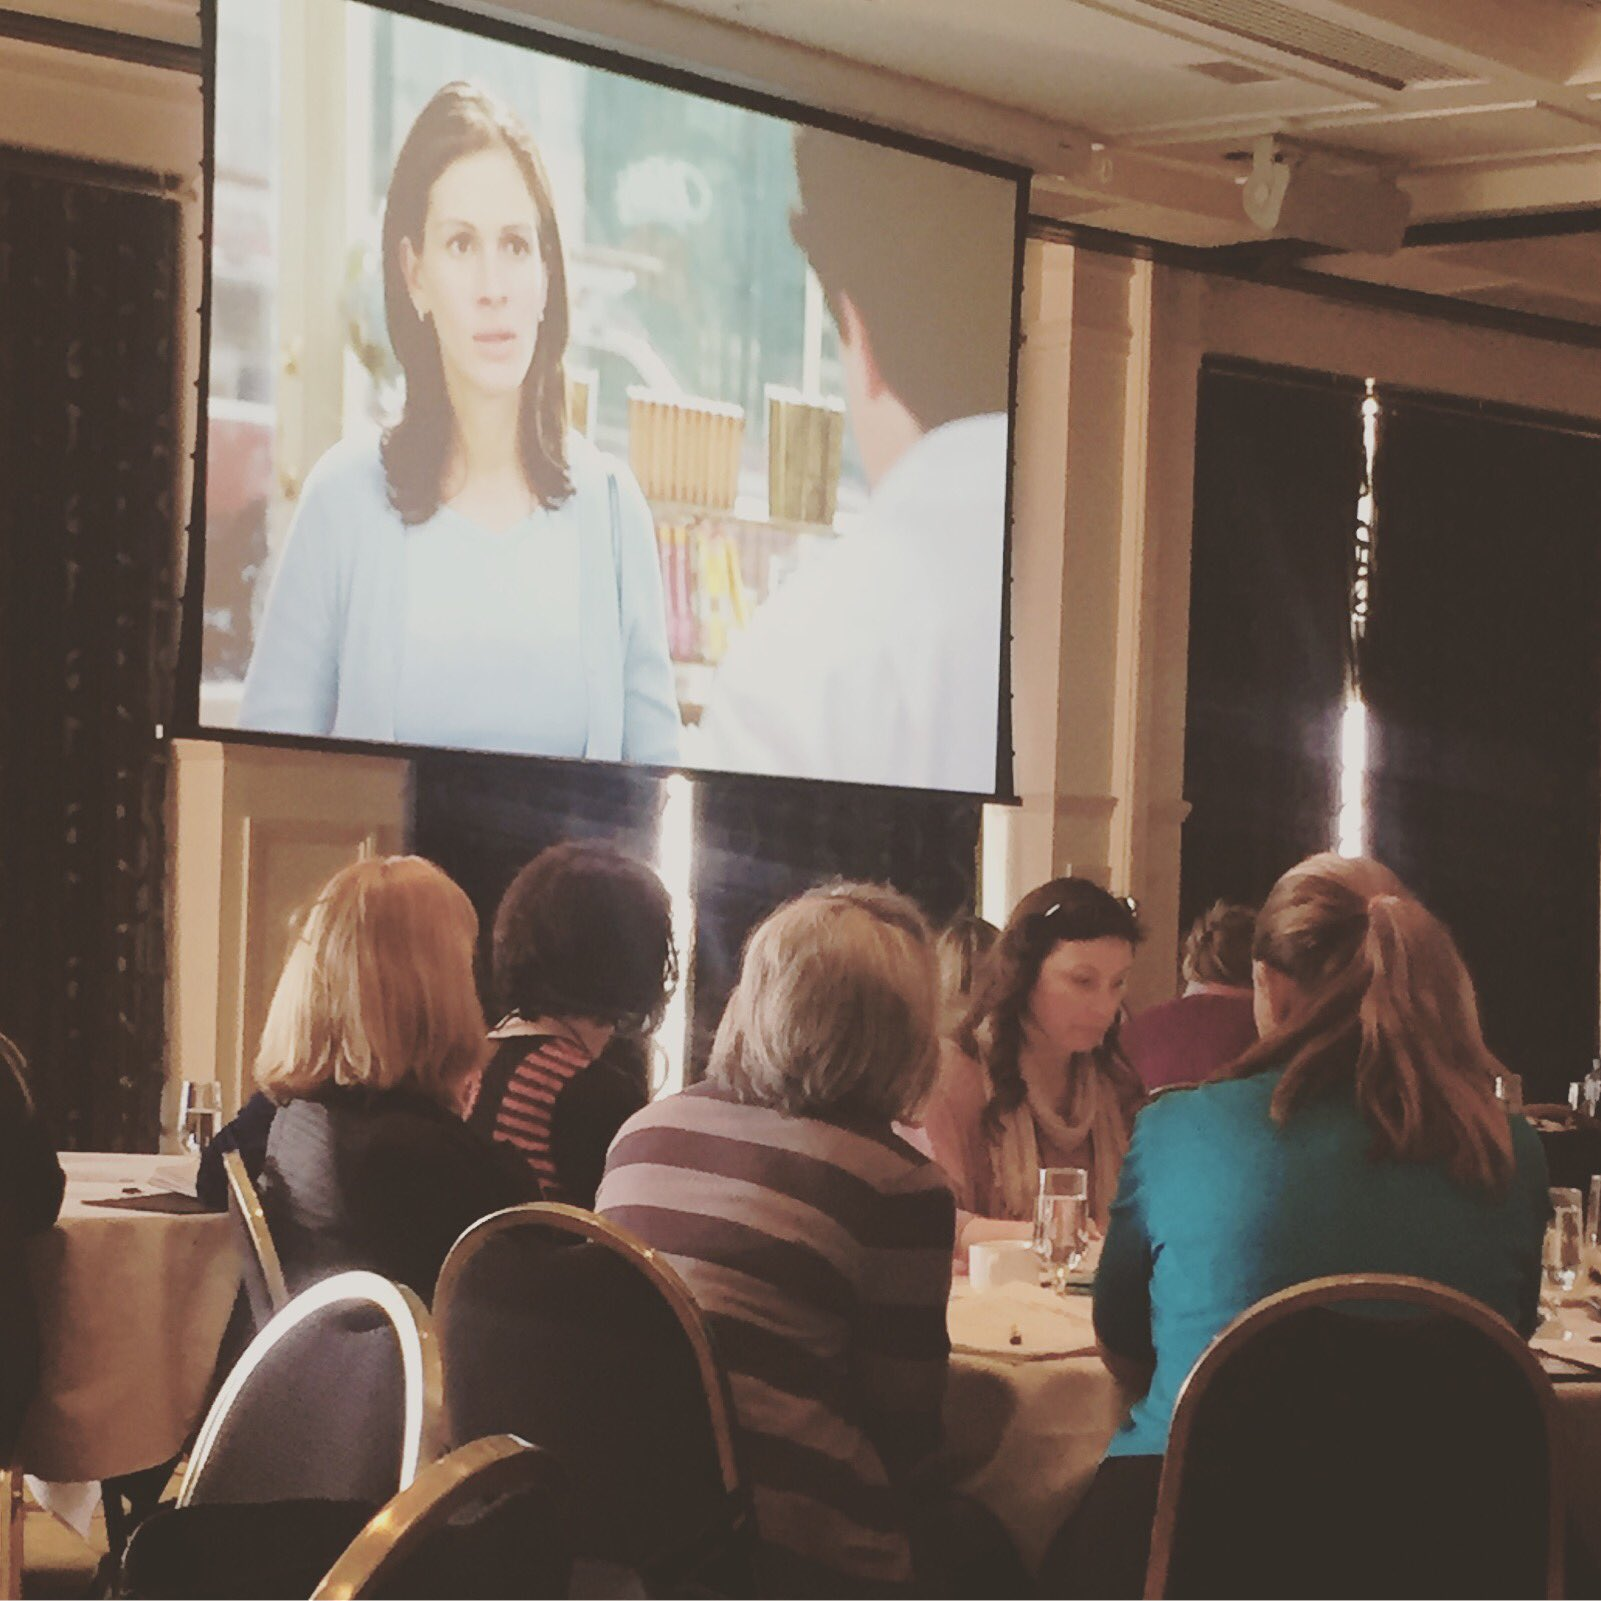 I'm just a girl, standing in front of a boy, asking him to love her #rwaus16 #nottinghill https://t.co/6iVRPx5wfM